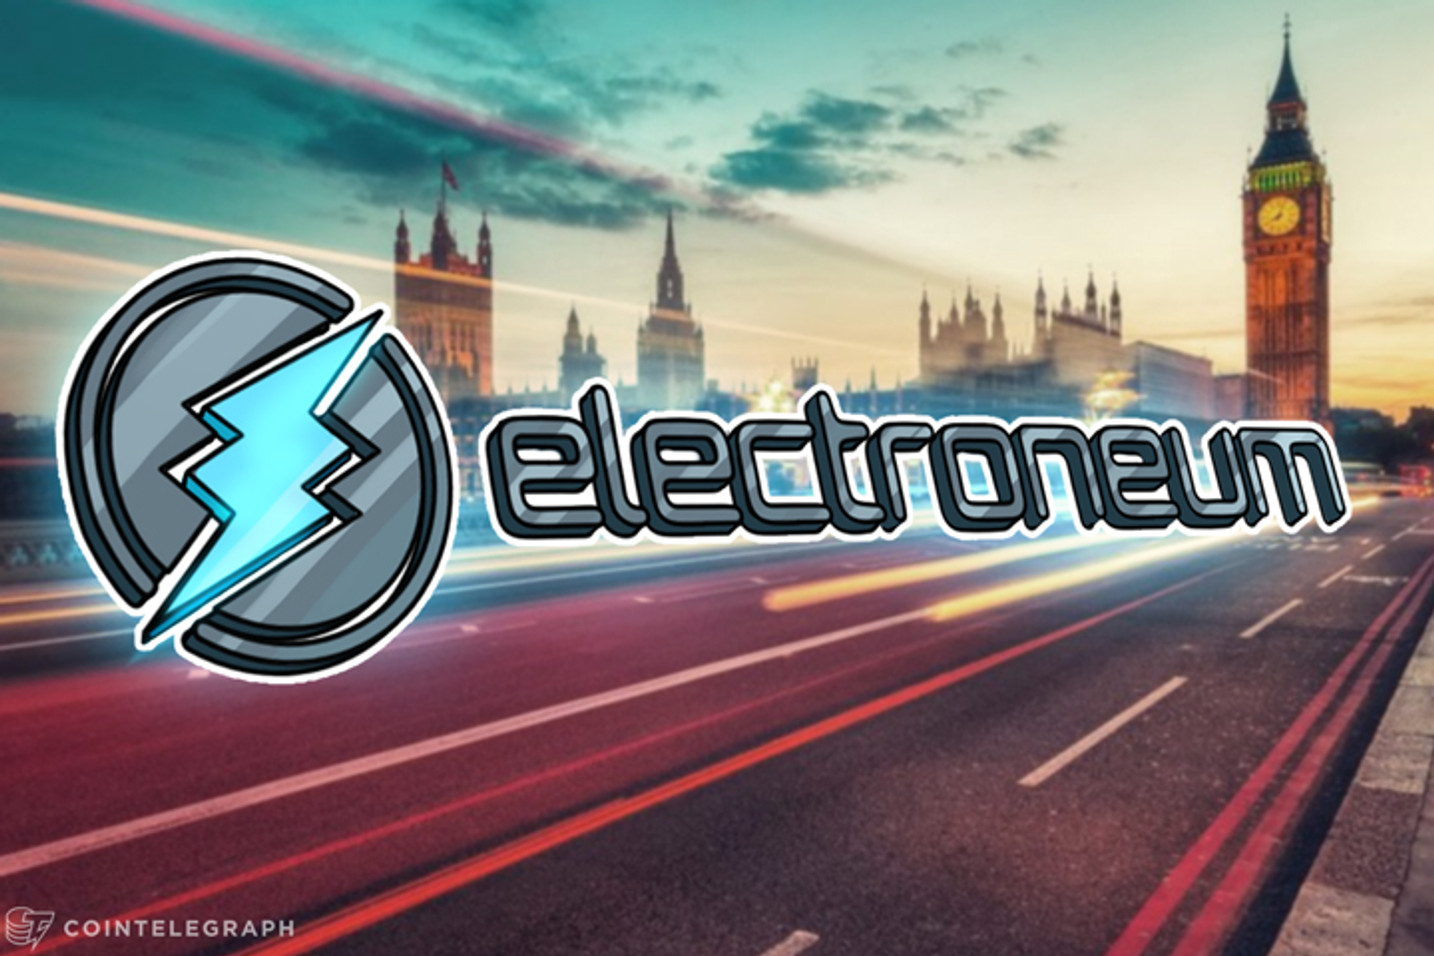 Mobile Crypto Electroneum Signs Agreement With Telecommunications & Payments Giant XIUS